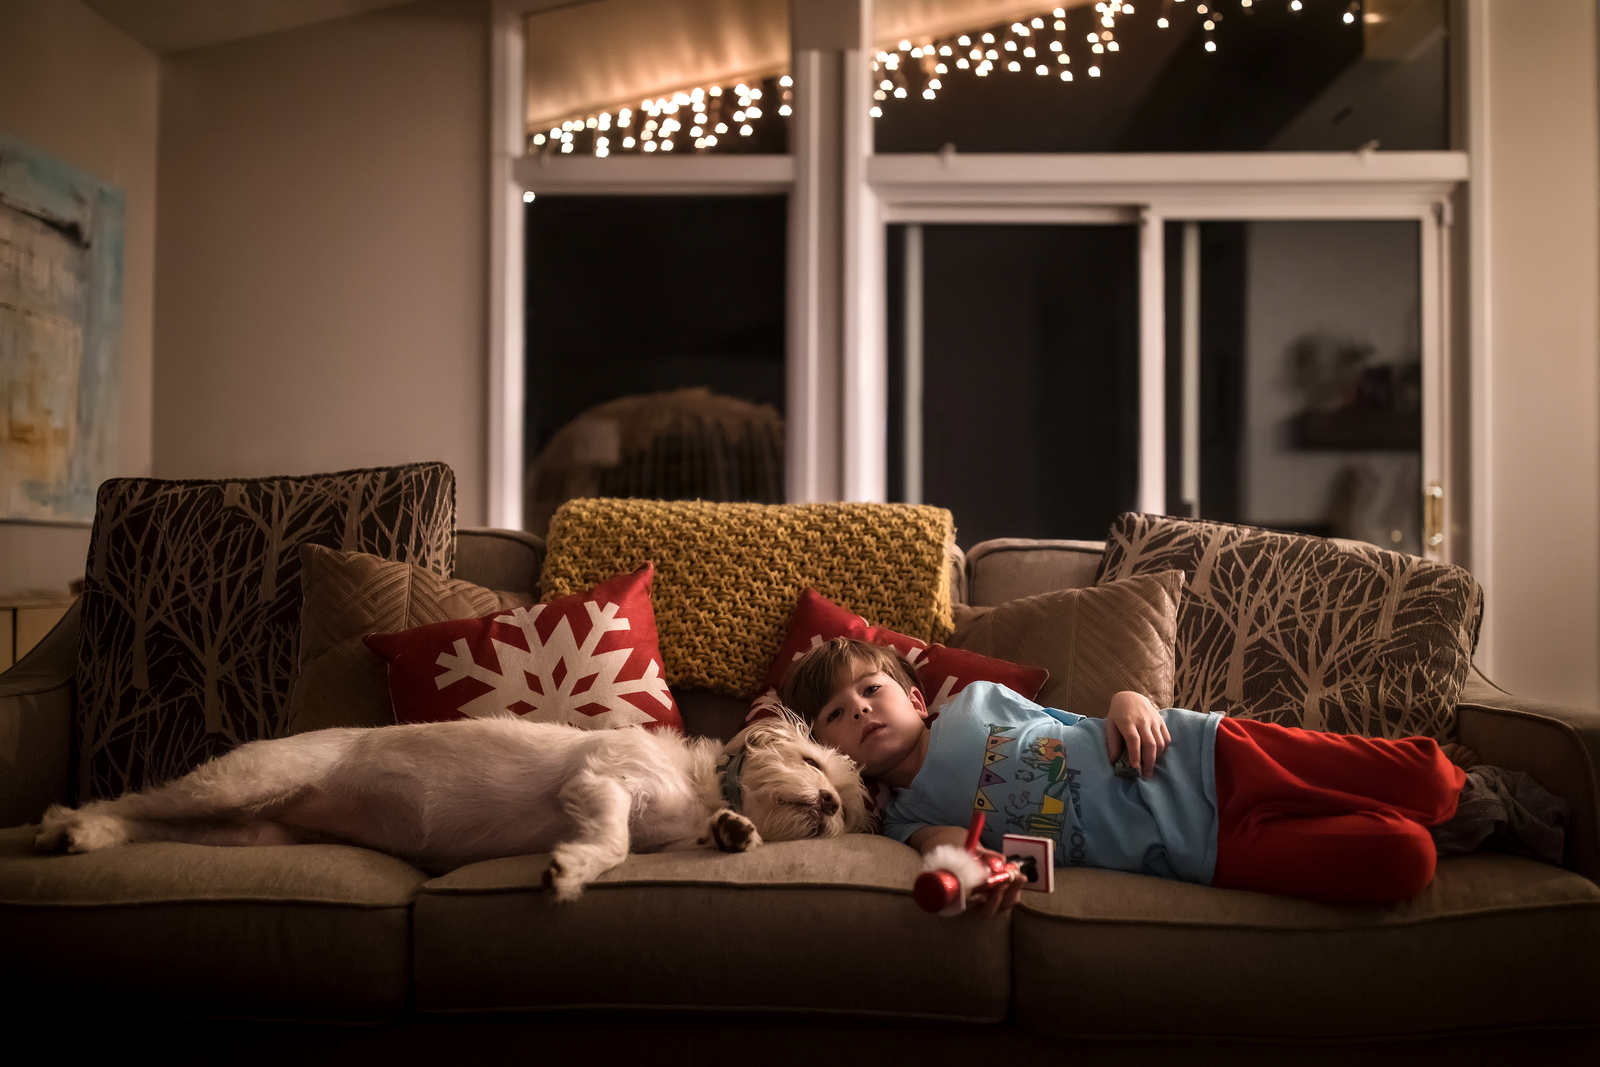 family photographer, columbus, ga, atlanta, documentary, photojournalism, christmas lights, boy and dog sleeping_9997